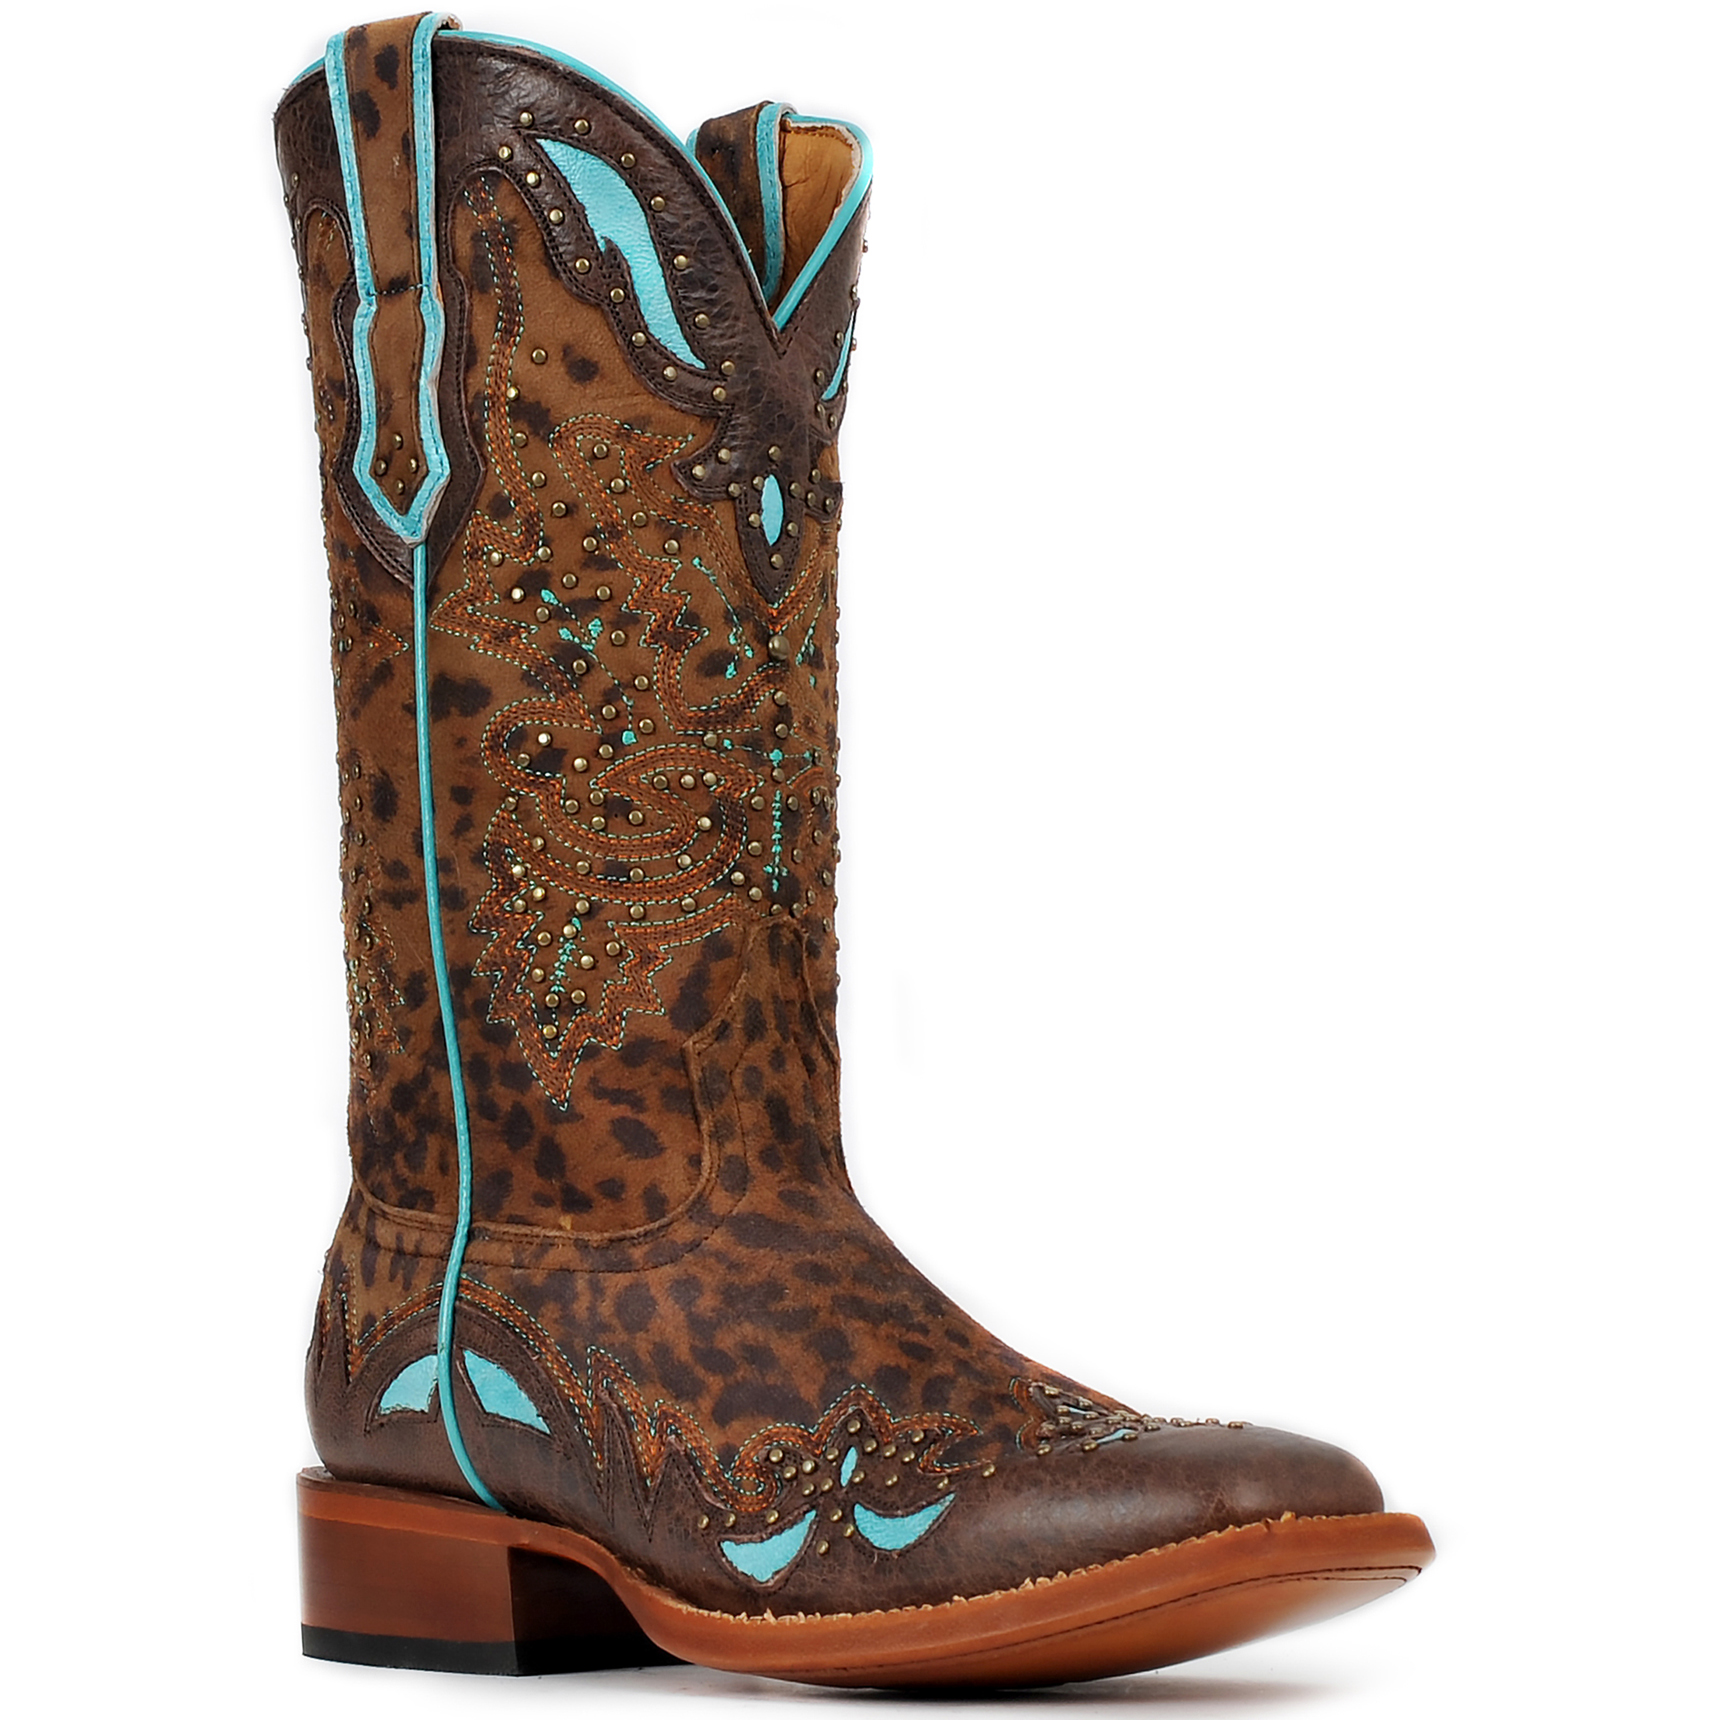 Gator Skin Boots Square Toe Womens-cinch-boots-square-toe